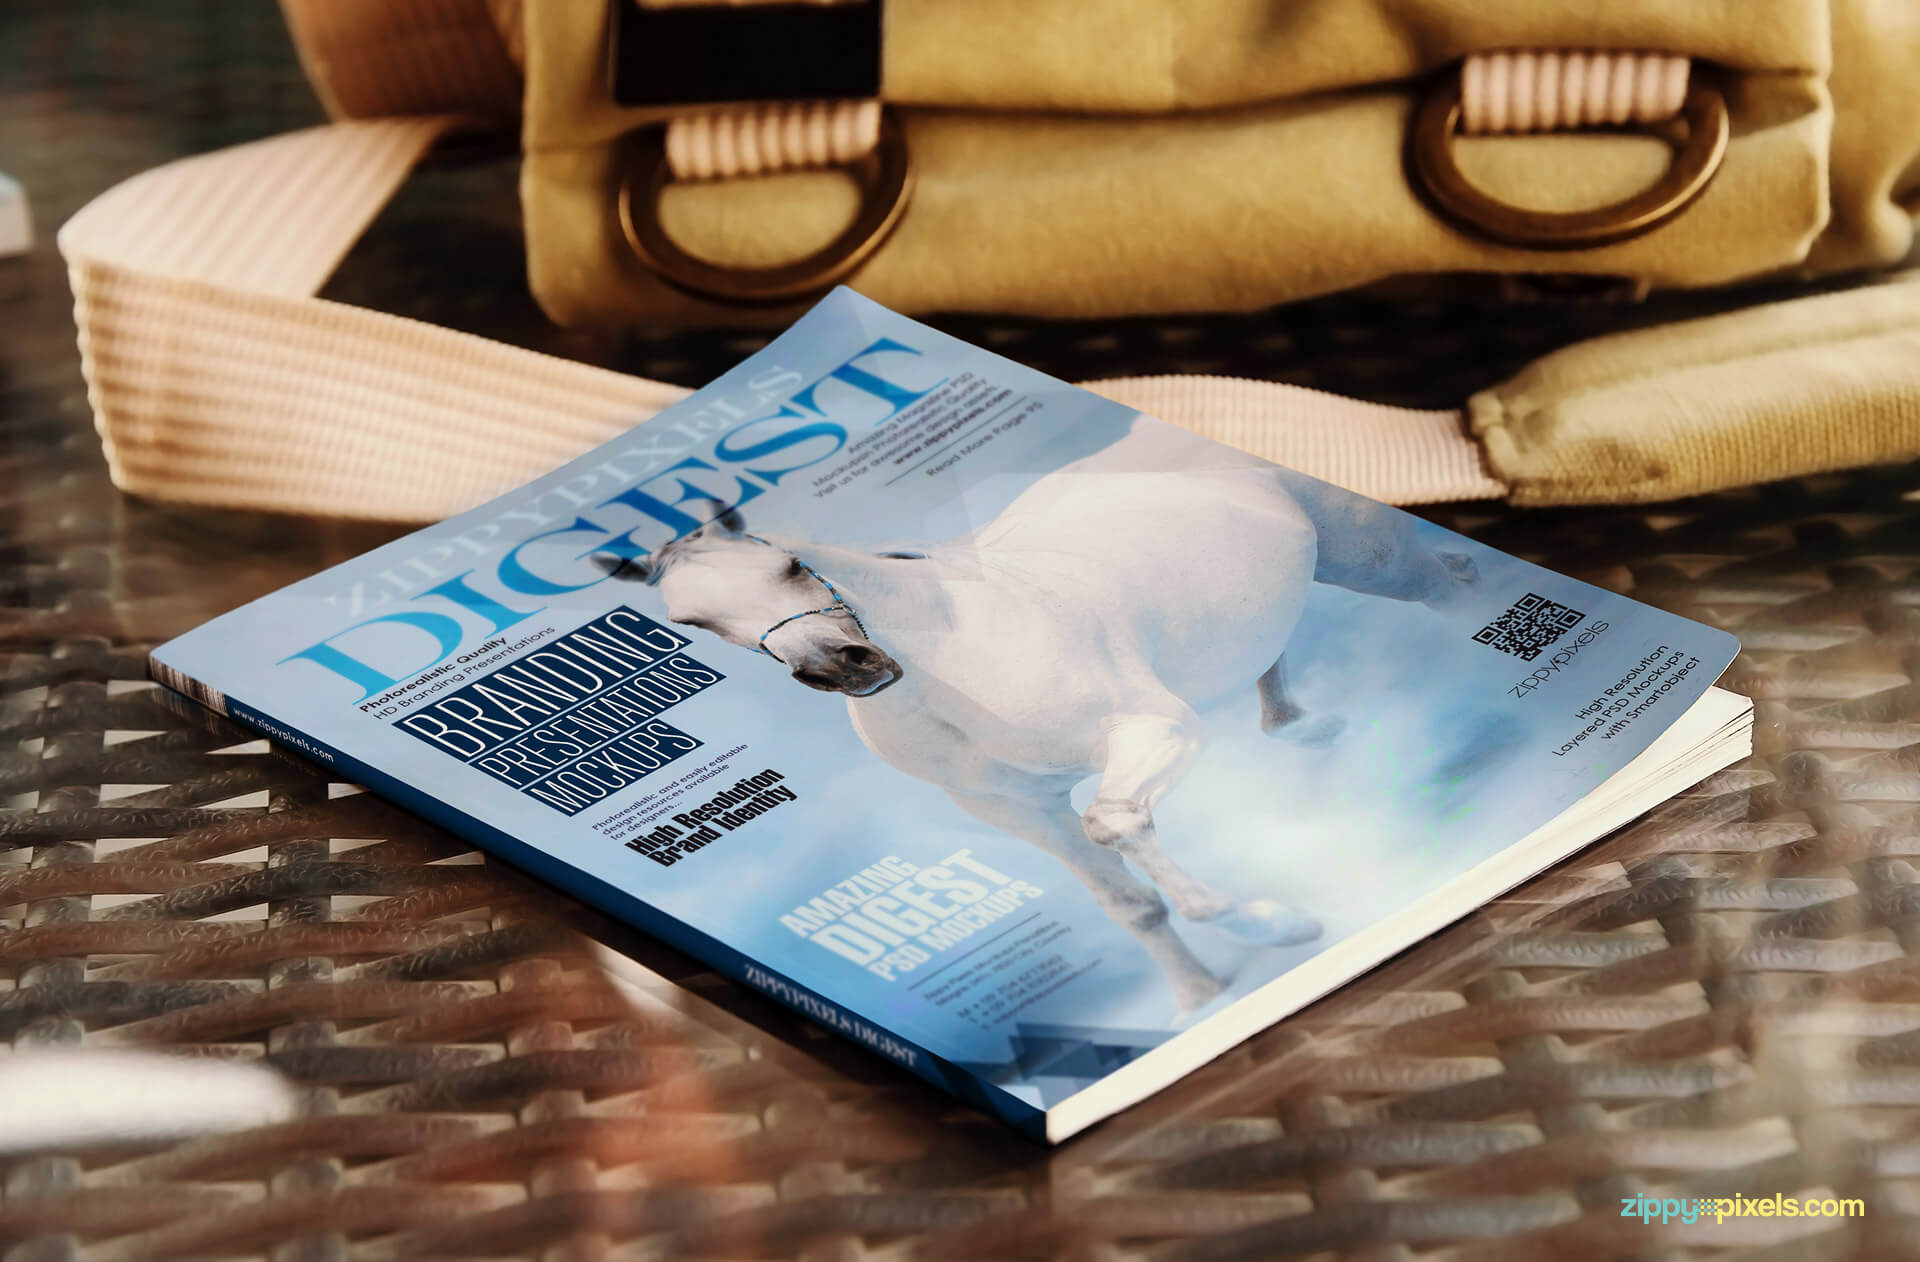 Front cover digest size magazine mockup lying flat on table